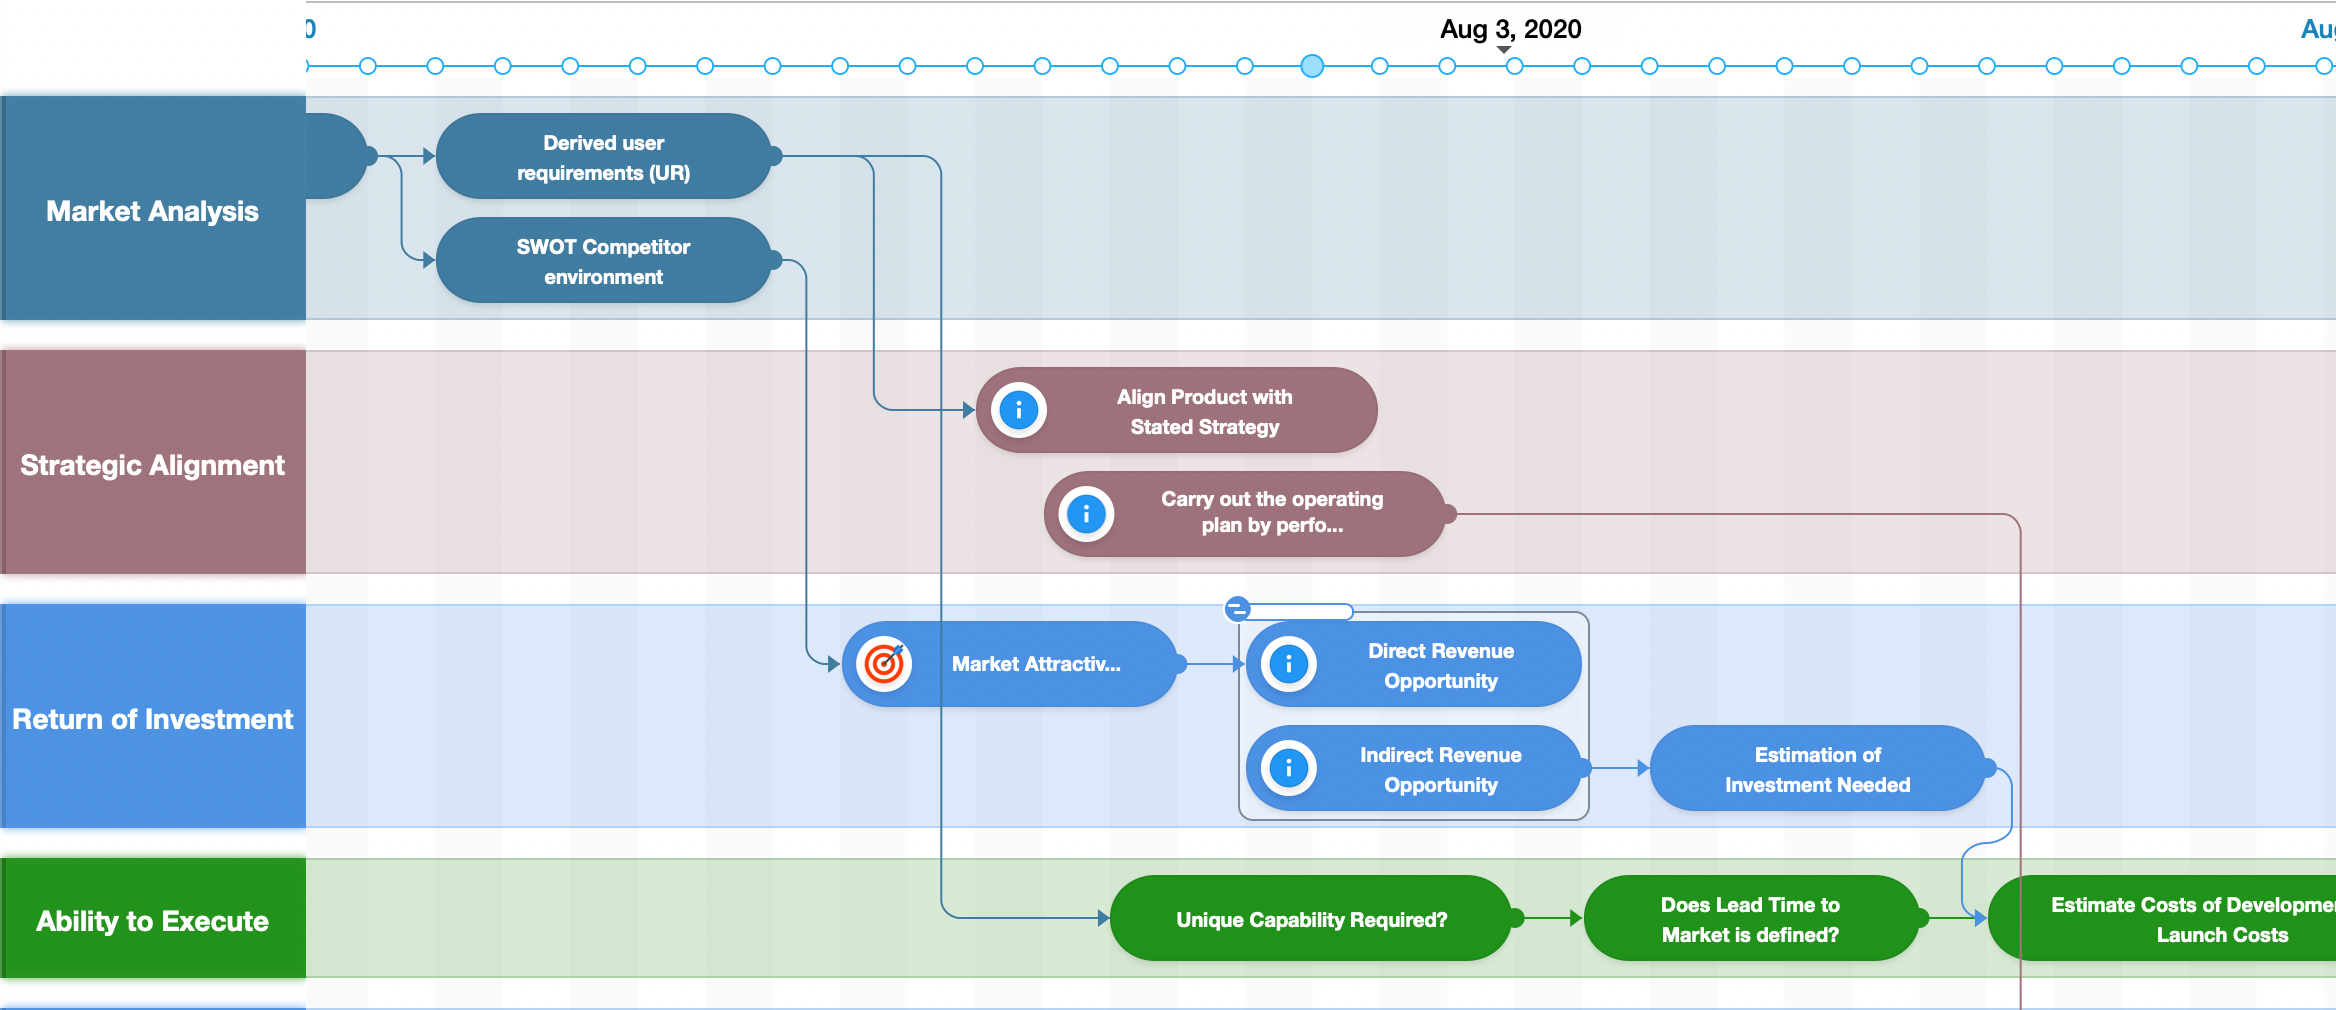 How to Make a Roadmap for a Project - Step-by-Step Guide and ...